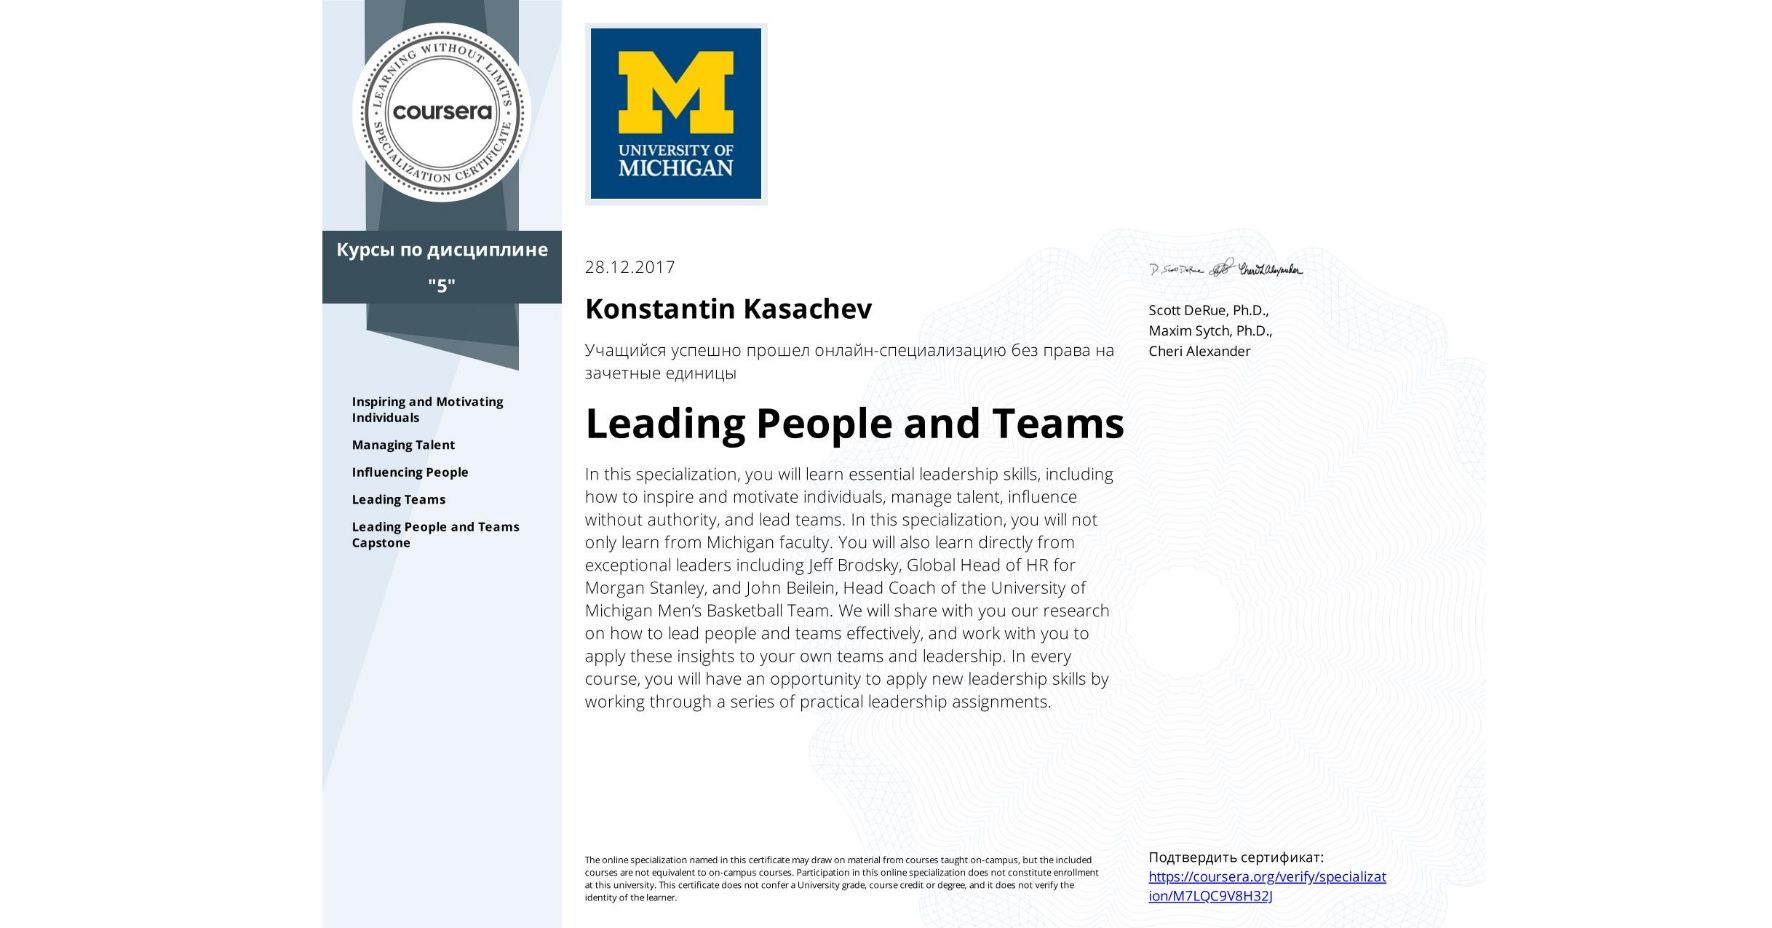 View certificate for Konstantin Kasachev, Leading People and Teams, offered through Coursera. In this specialization, you will learn essential leadership skills, including how to inspire and motivate individuals, manage talent, influence without authority, and lead teams. In this specialization, you will not only learn from Michigan faculty. You will also learn directly from exceptional leaders including Jeff Brodsky, Global Head of HR for Morgan Stanley, and John Beilein, Head Coach of the University of Michigan Men's Basketball Team. We will share with you our research on how to lead people and teams effectively, and work with you to apply these insights to your own teams and leadership. In every course, you will have an opportunity to apply new leadership skills by working through a series of practical leadership assignments.